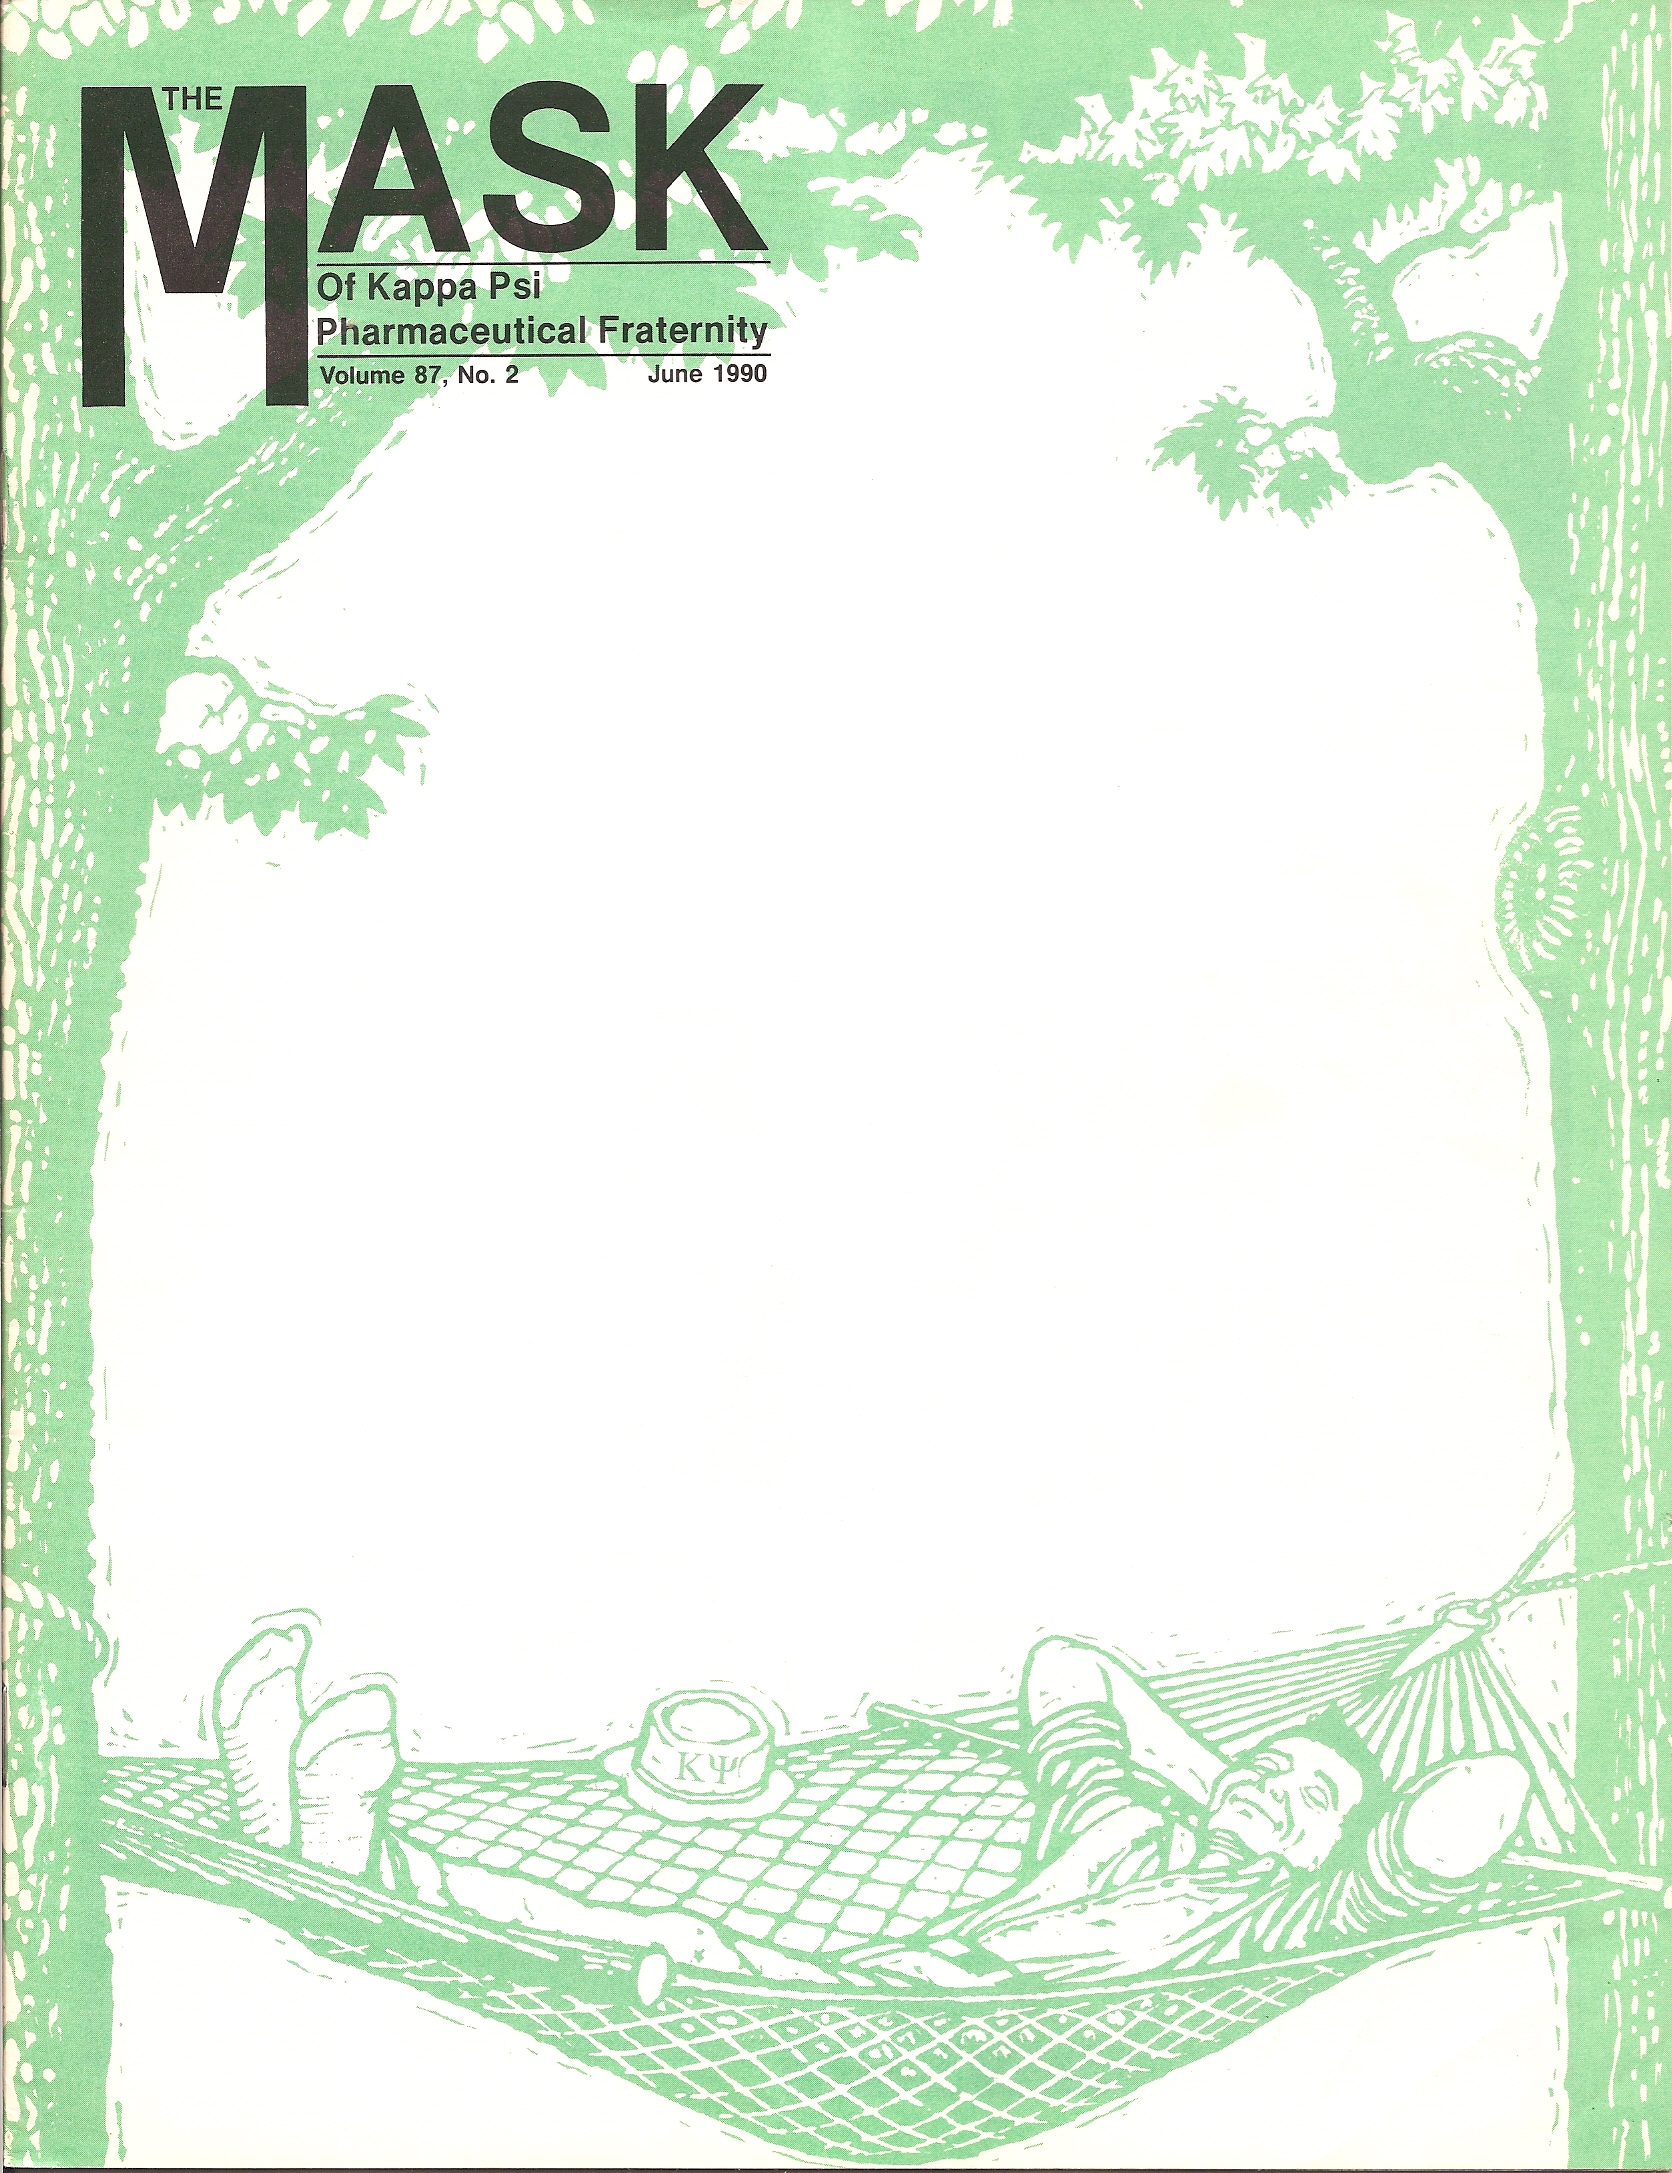 mask_cover_06_1990.png